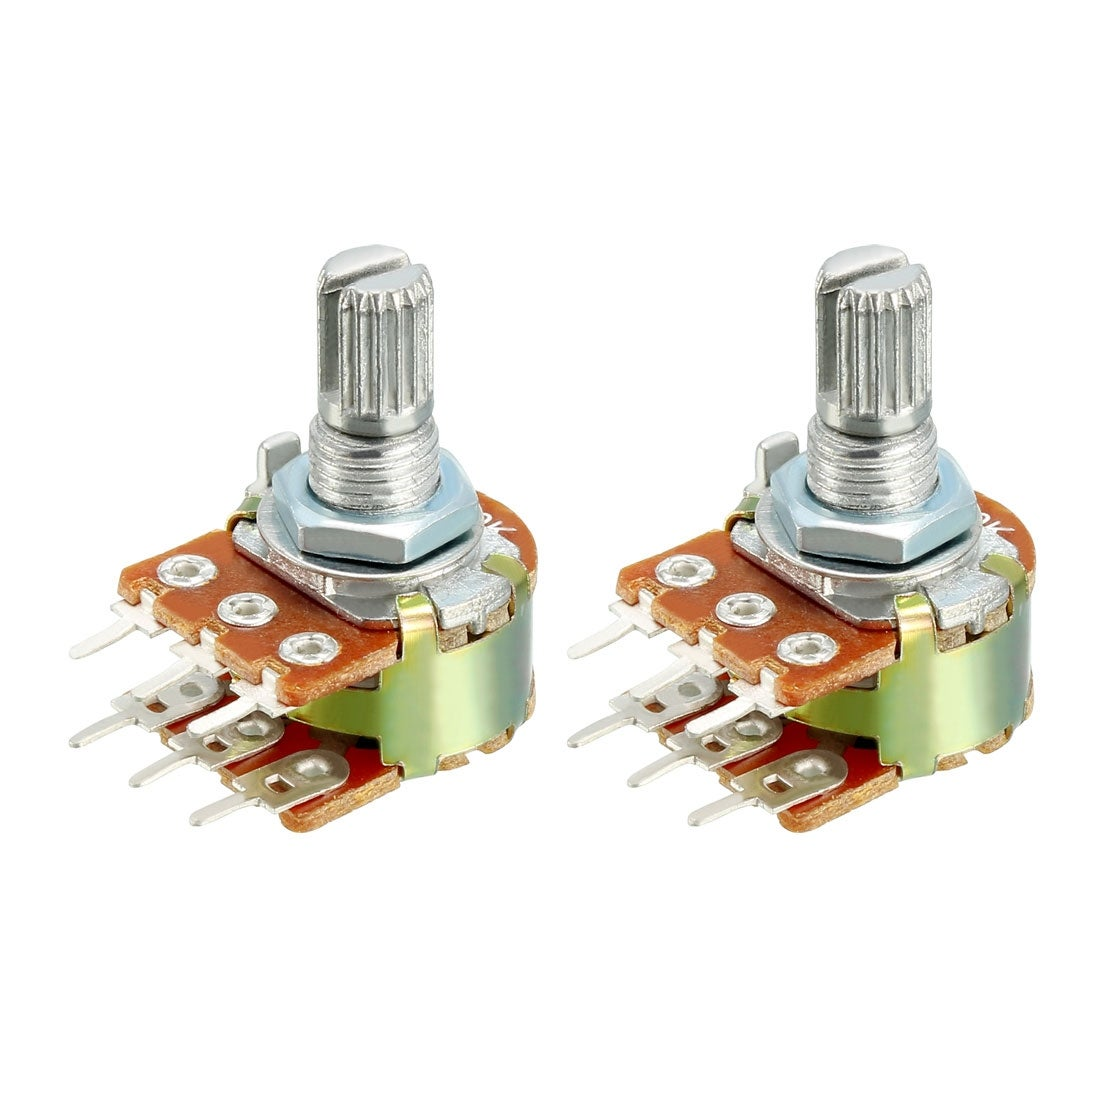 pack of 10pcs Variable Resistor Potentiometers 2k ohm